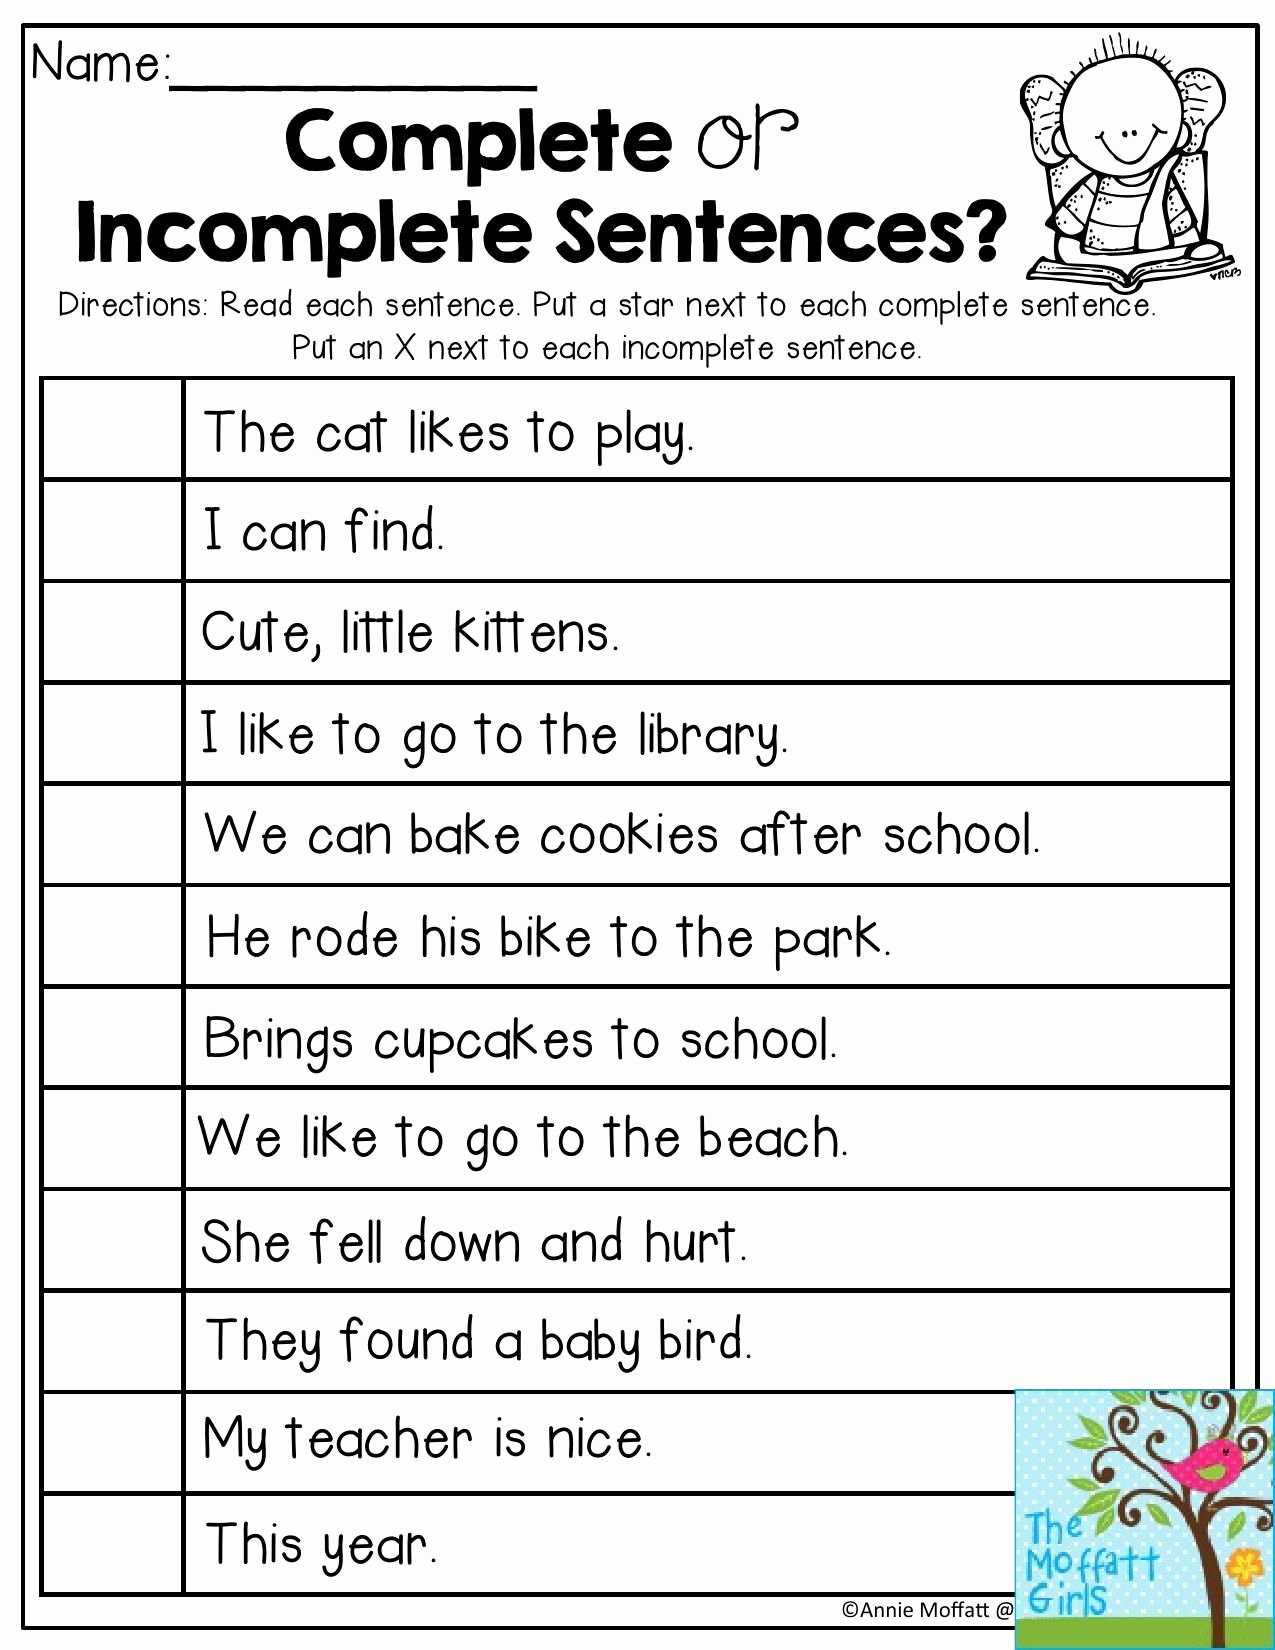 Complete Sentences Worksheet 1st Grade Fresh Plete or In Plete Sentences Read Each Sentence and